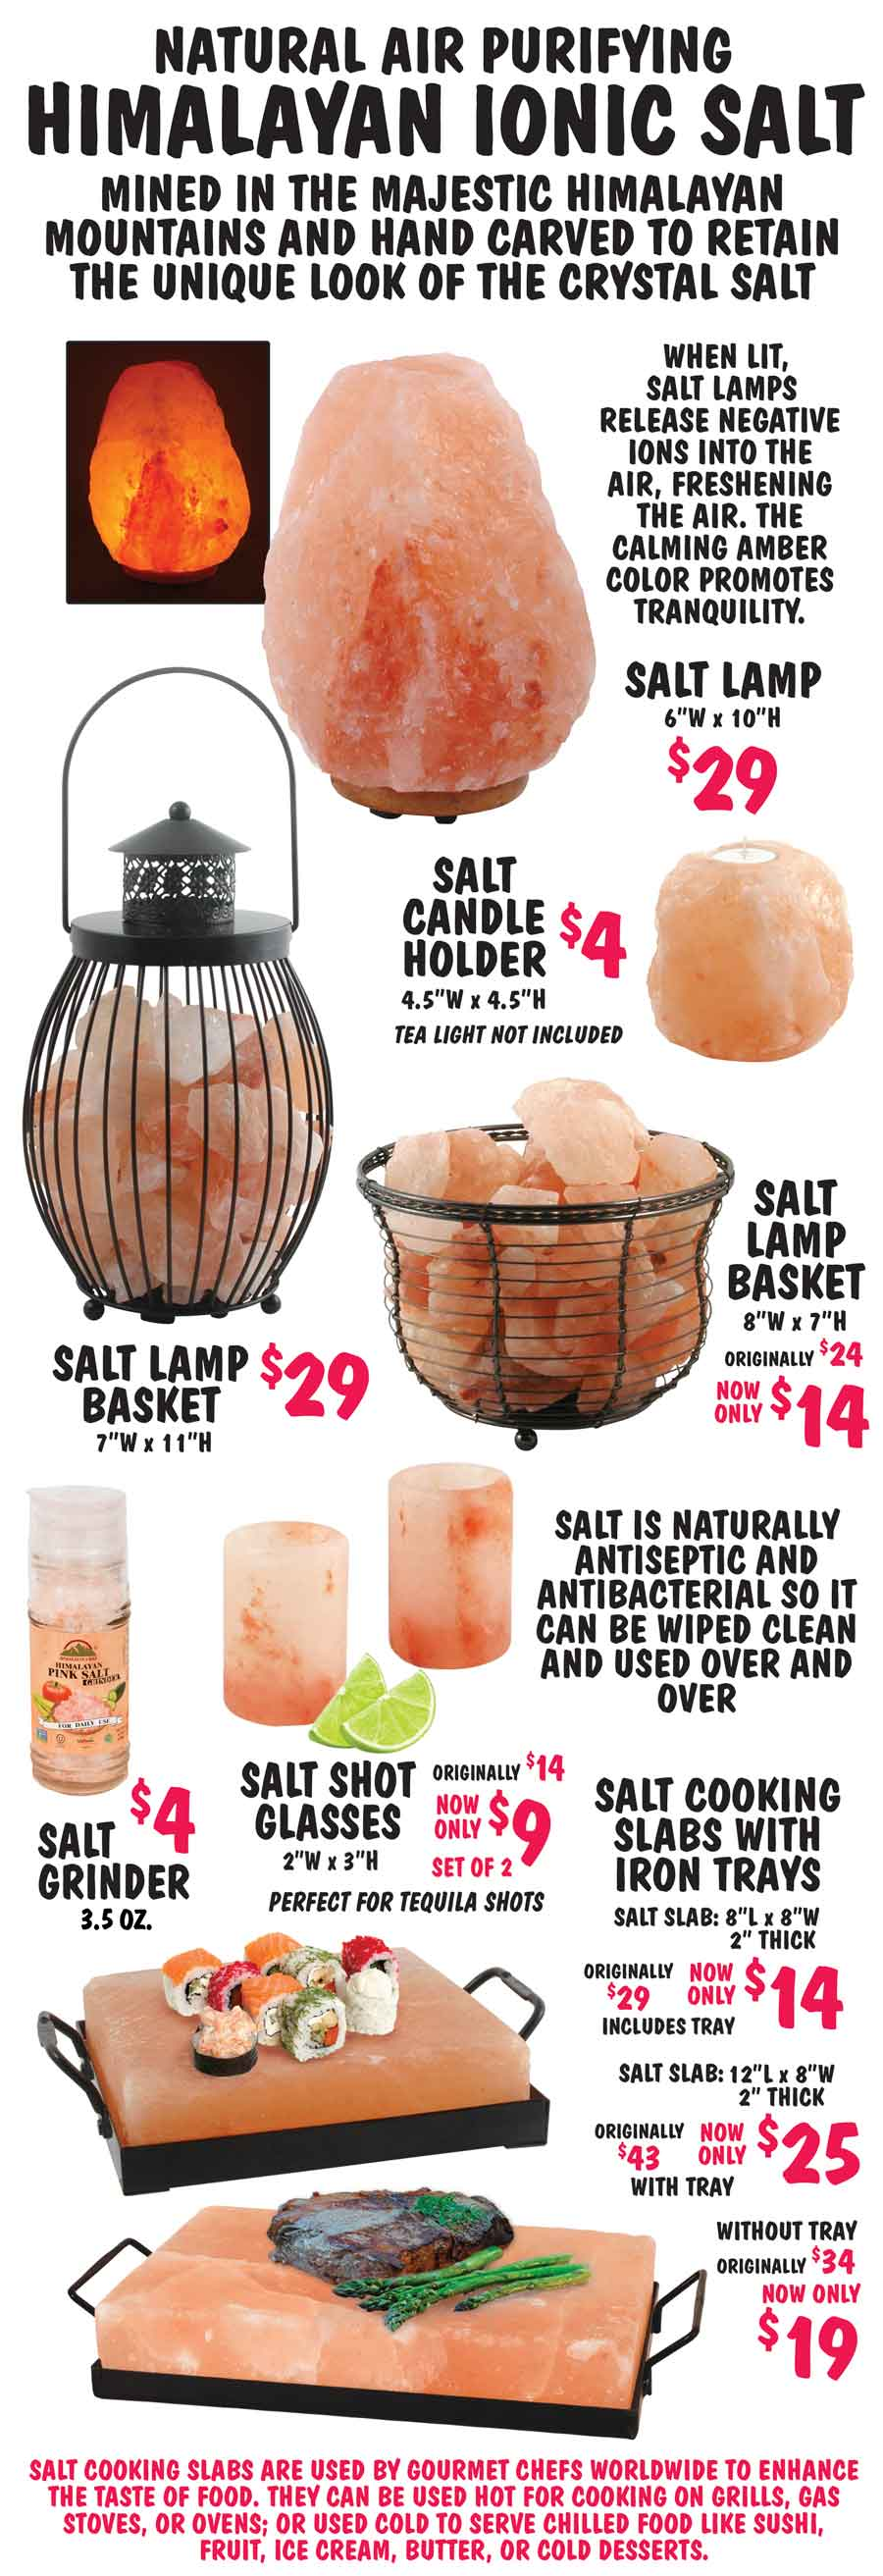 Himalayan Salt Lamps, Candle Holders, Cooking Slabs, Shot Glasses, and Grinders - Lamps $14 to $29, Candle Holders $4, Cooking Slabs $14 to $25, Shot Glasses $9 for a set of 2, 3 and a half ounce Salt Grinders $4. Natural air purifying Himalayan ionic salt is mined in the majestic Himalayan mountains and hand carved to retain the unique look of the crystal salt. When lit, salt lamps release negative ions into the air, freshening the air. The calming amber color promotes tranquility. Salt is naturally antiseptic and antibacterial so it can be wiped clean and used over and over. Salt cooking slabs are used by gourmet chefs worldwide to enhance the taste of food. They can be used hot for cooking on grills, gas stoves, or ovens; or used cold to serve chilled food like sushi, fruit, ice cream, butter, or cold desserts.